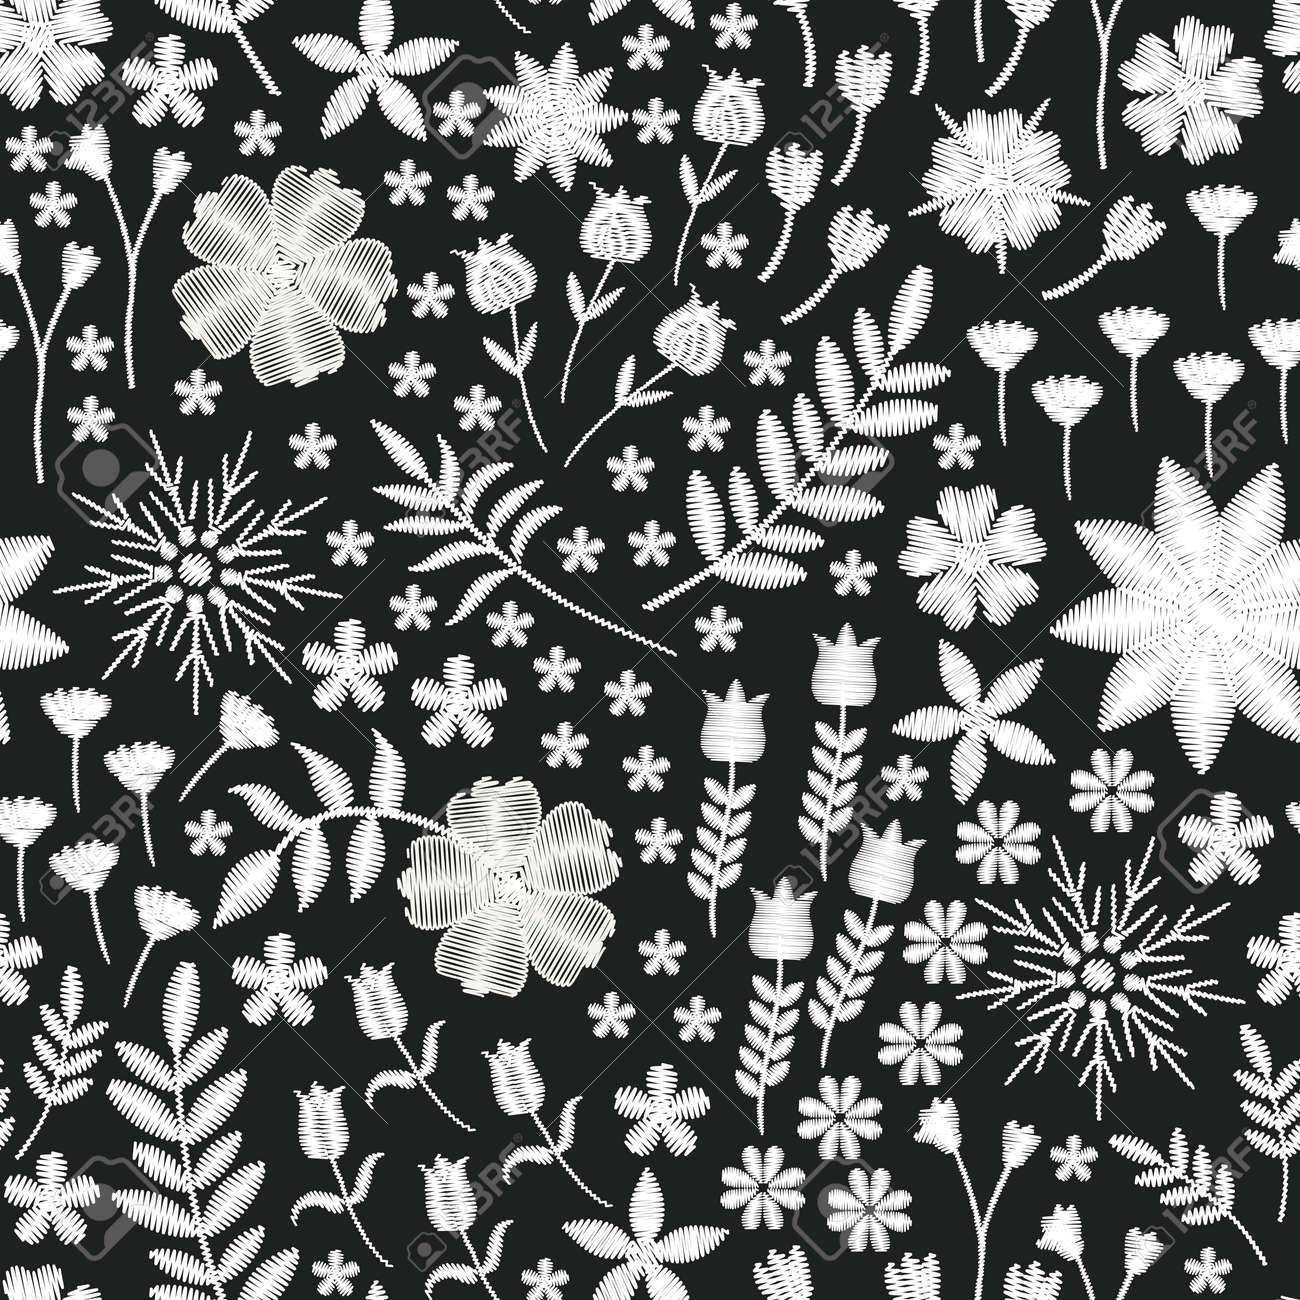 Embroidery seamless design. Beautiful pattern with white flowers on black background. Fashion print for fabric. - 173407996